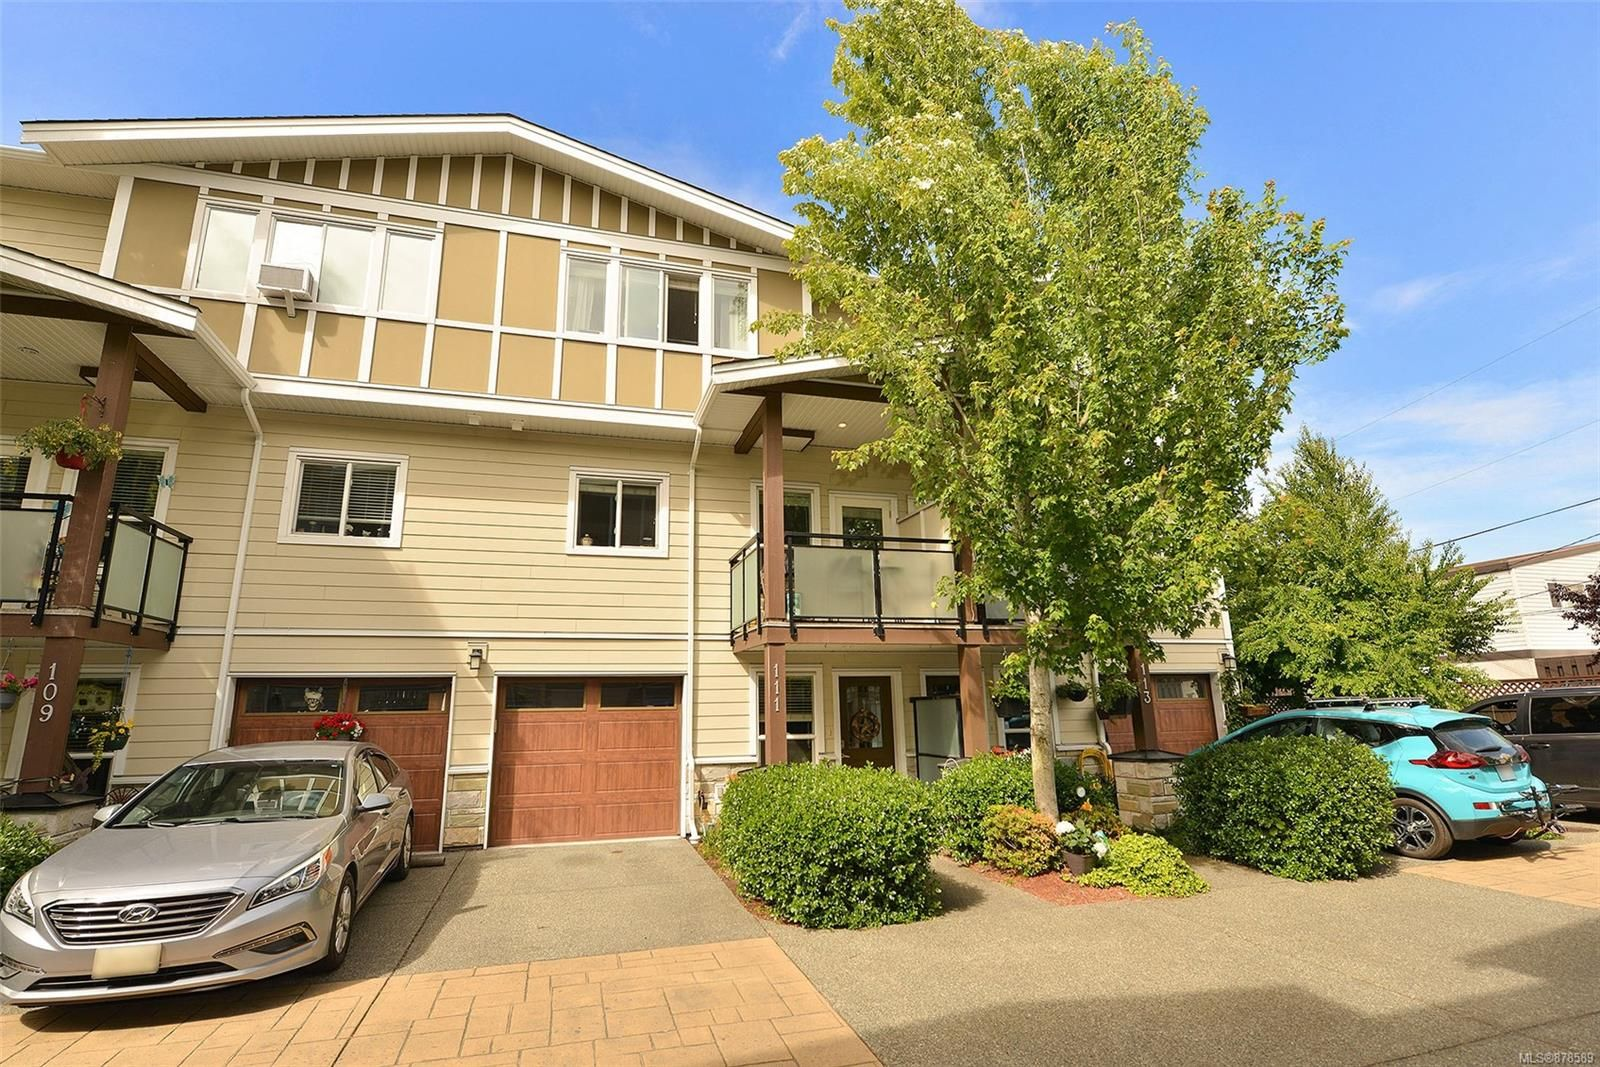 Main Photo: 111 2889 CARLOW Rd in : La Langford Proper Row/Townhouse for sale (Langford)  : MLS®# 878589